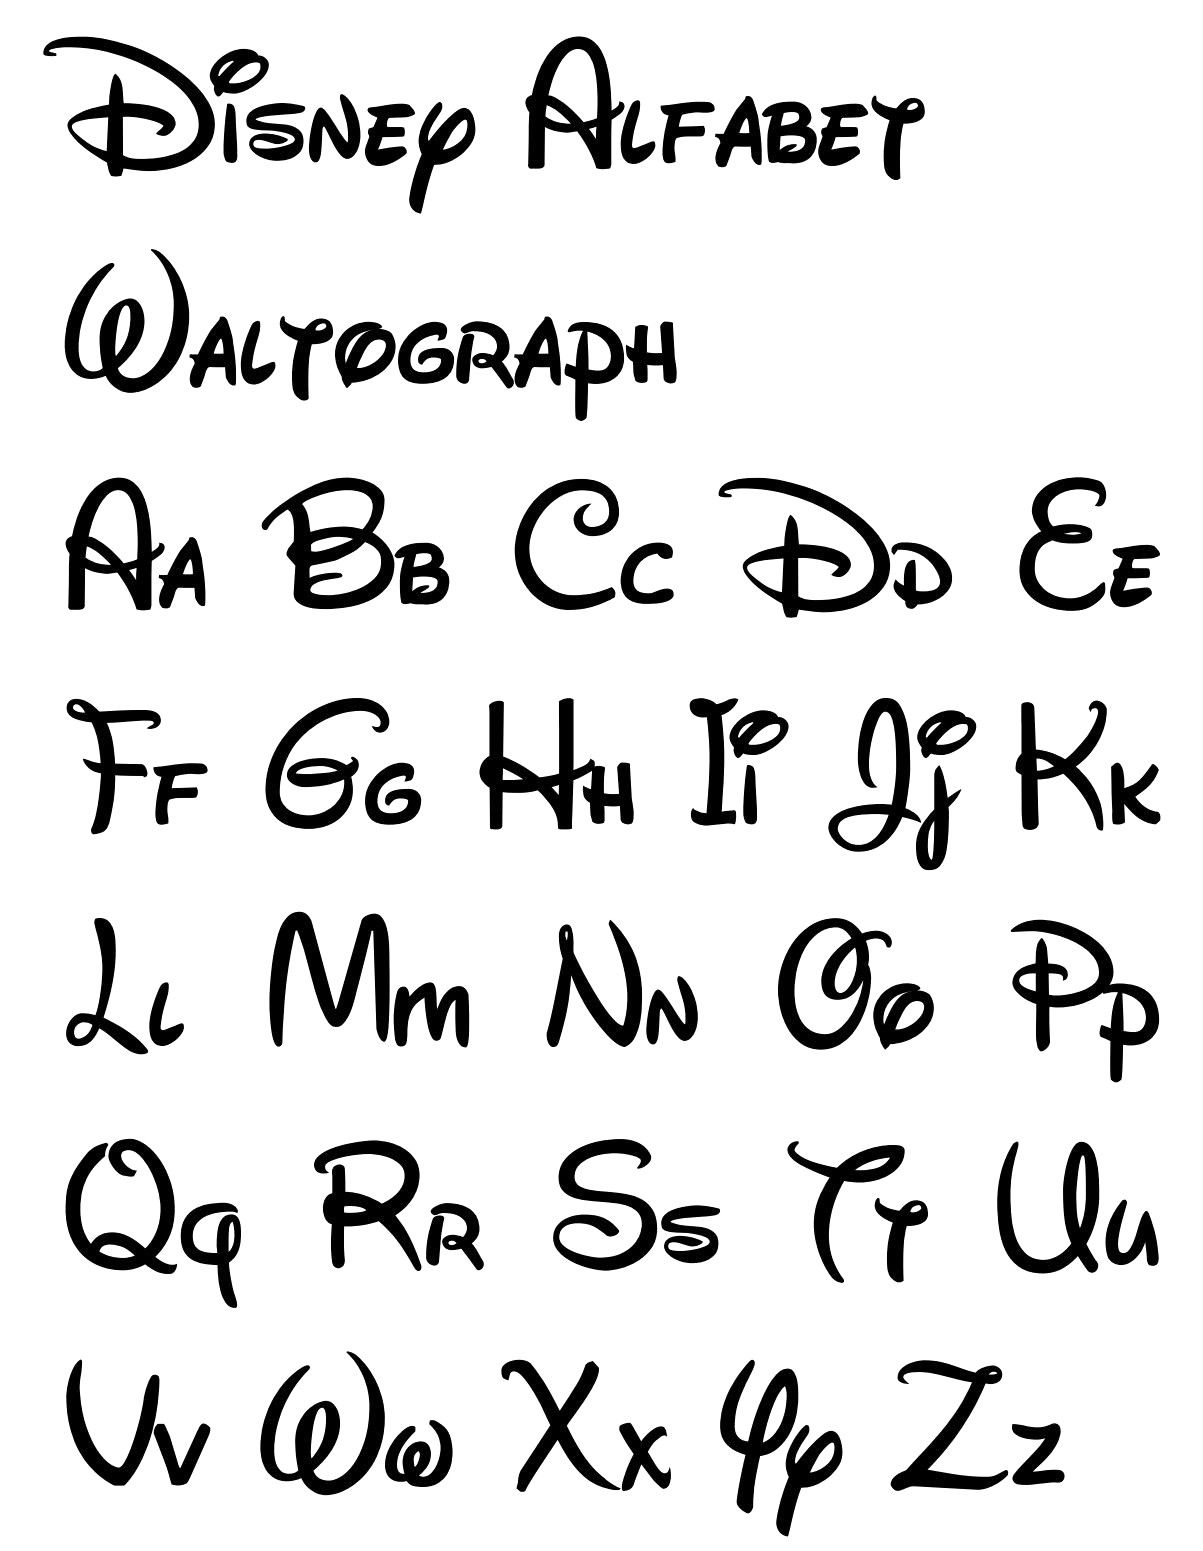 graphic regarding Printable Calligraphy Stencils known as Free of charge Printable Disney Letter Stencils Disney Pinterest